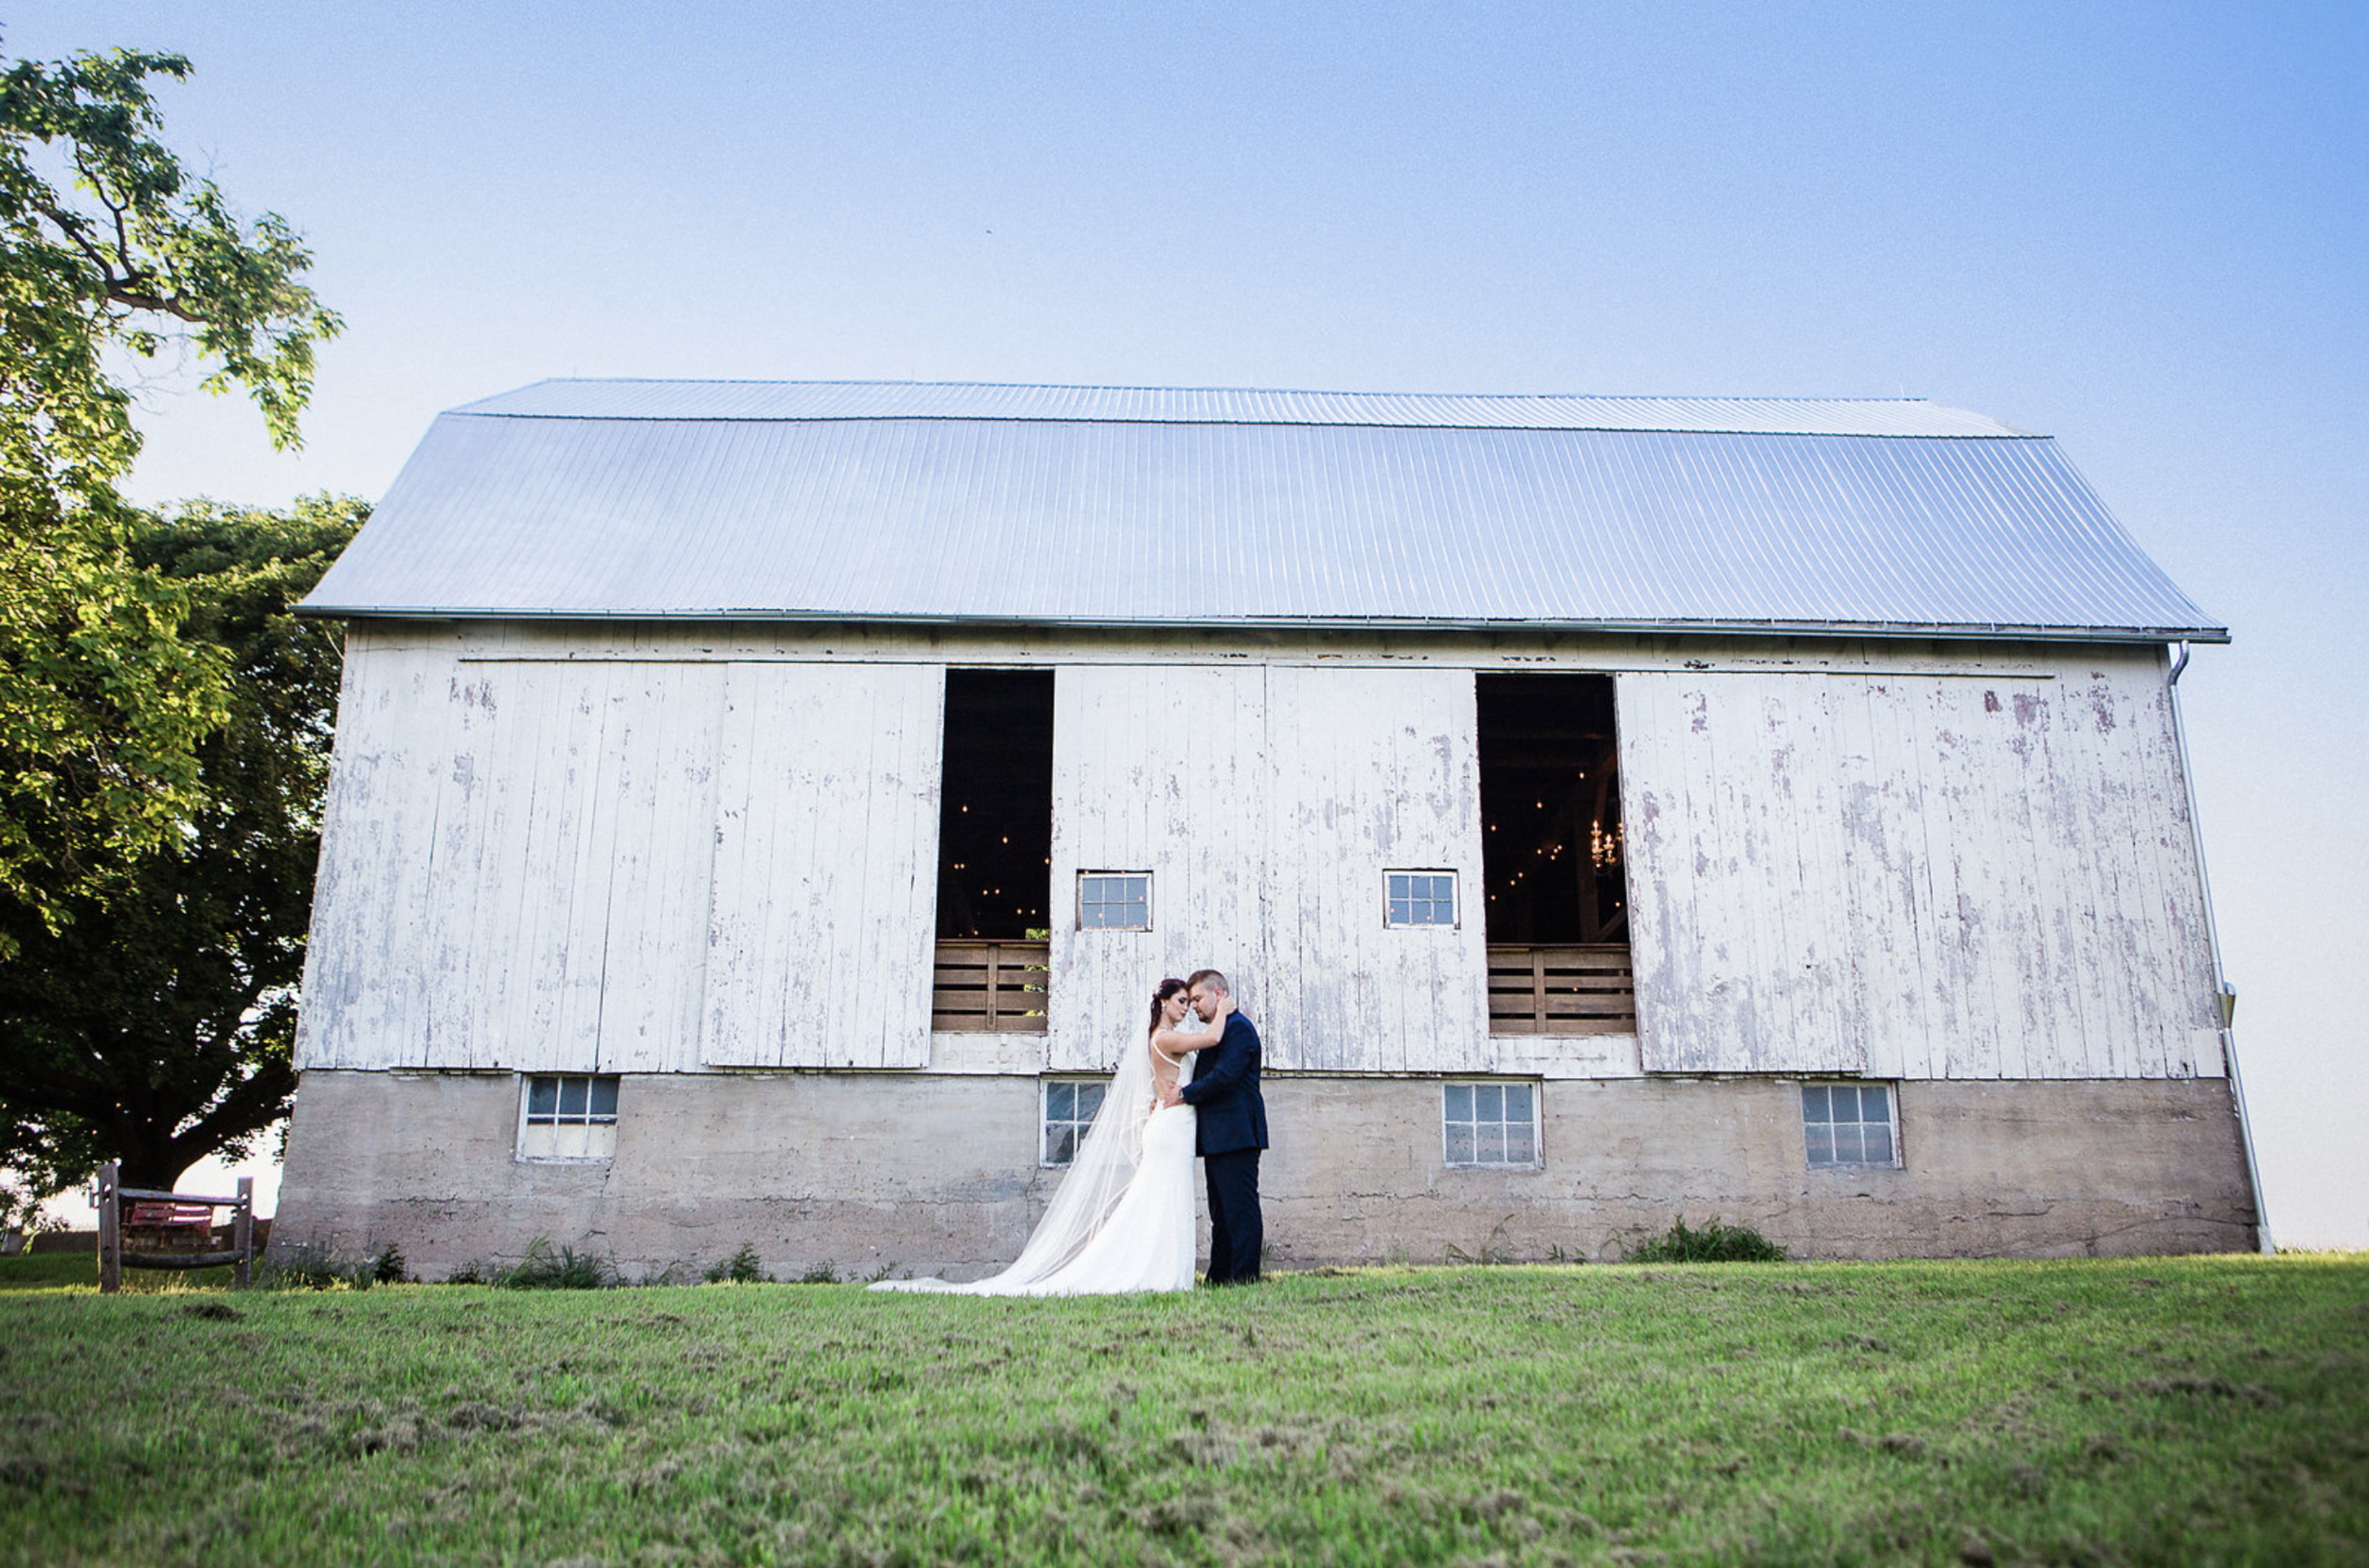 Rustic & Feminine at Parson's Farm Styled by Event Prep Photographed by Love is Greater